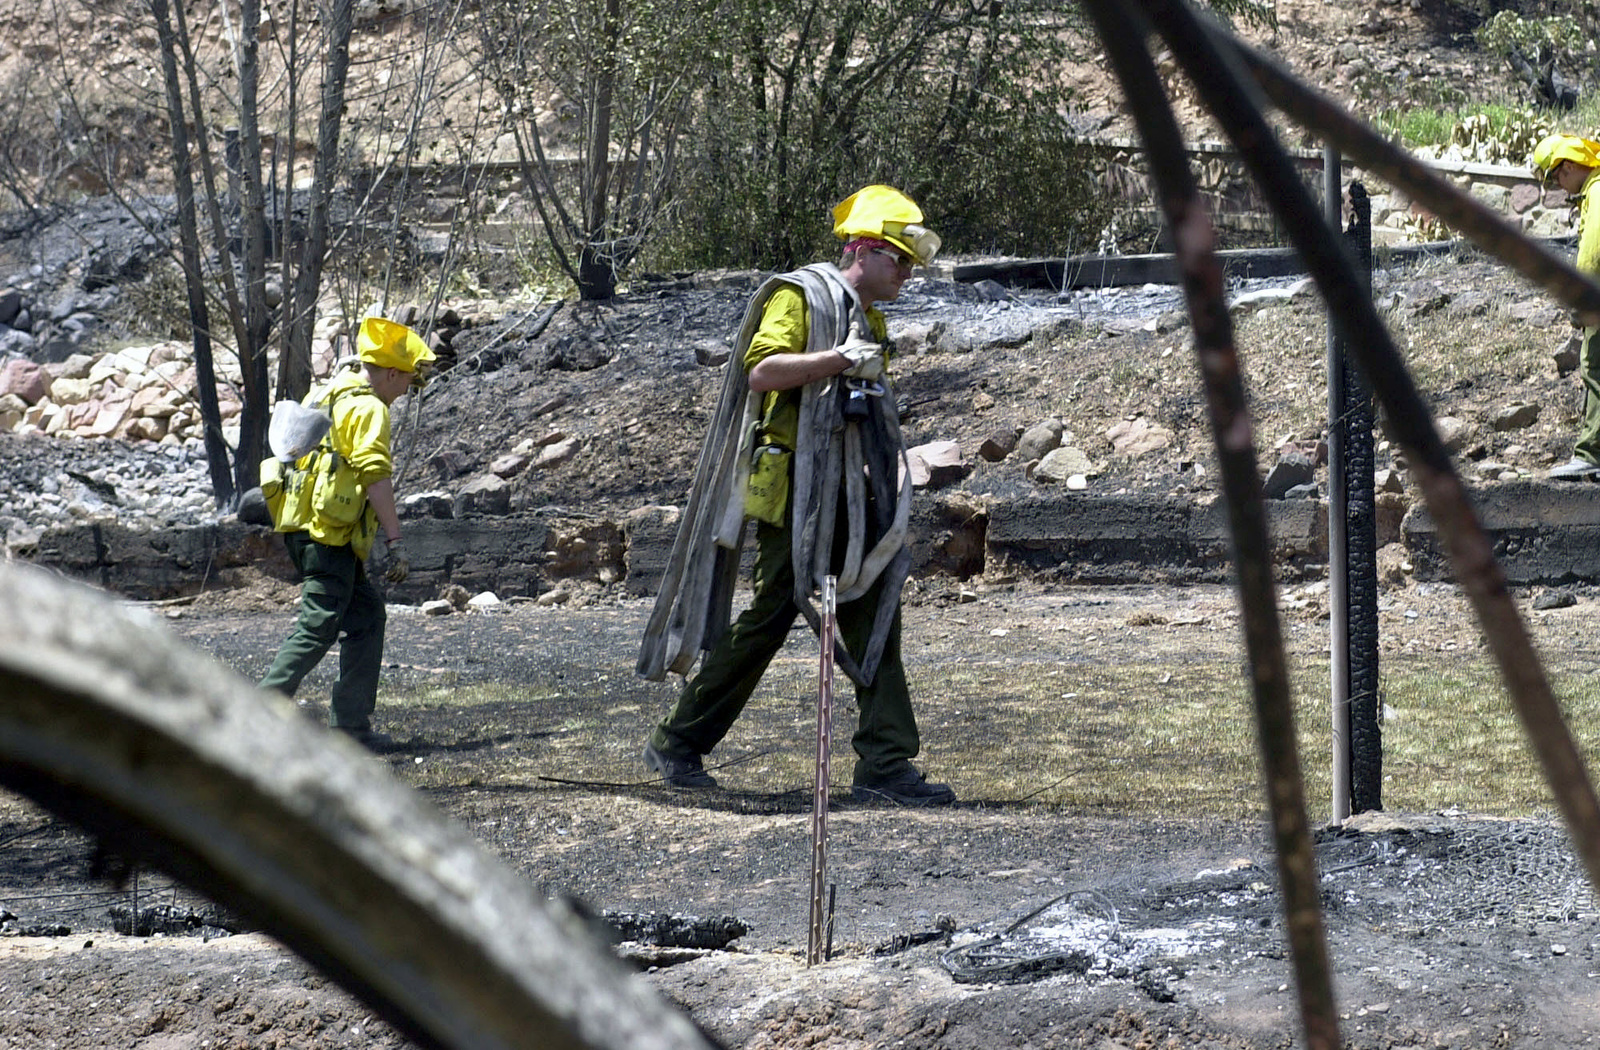 Firemen with a water hose and shovel walk along the charred landscape during the Coal Seam fires. The Coal Seam Fire started sometime in the mid-1970s as an underground fire burned along a rich vein of coal. Occassionally the fire breaks through to the surface. At this time it had burned 7,300 acres, damaged an estimated 40 structures, and caused the evacuation of 2,000 residents